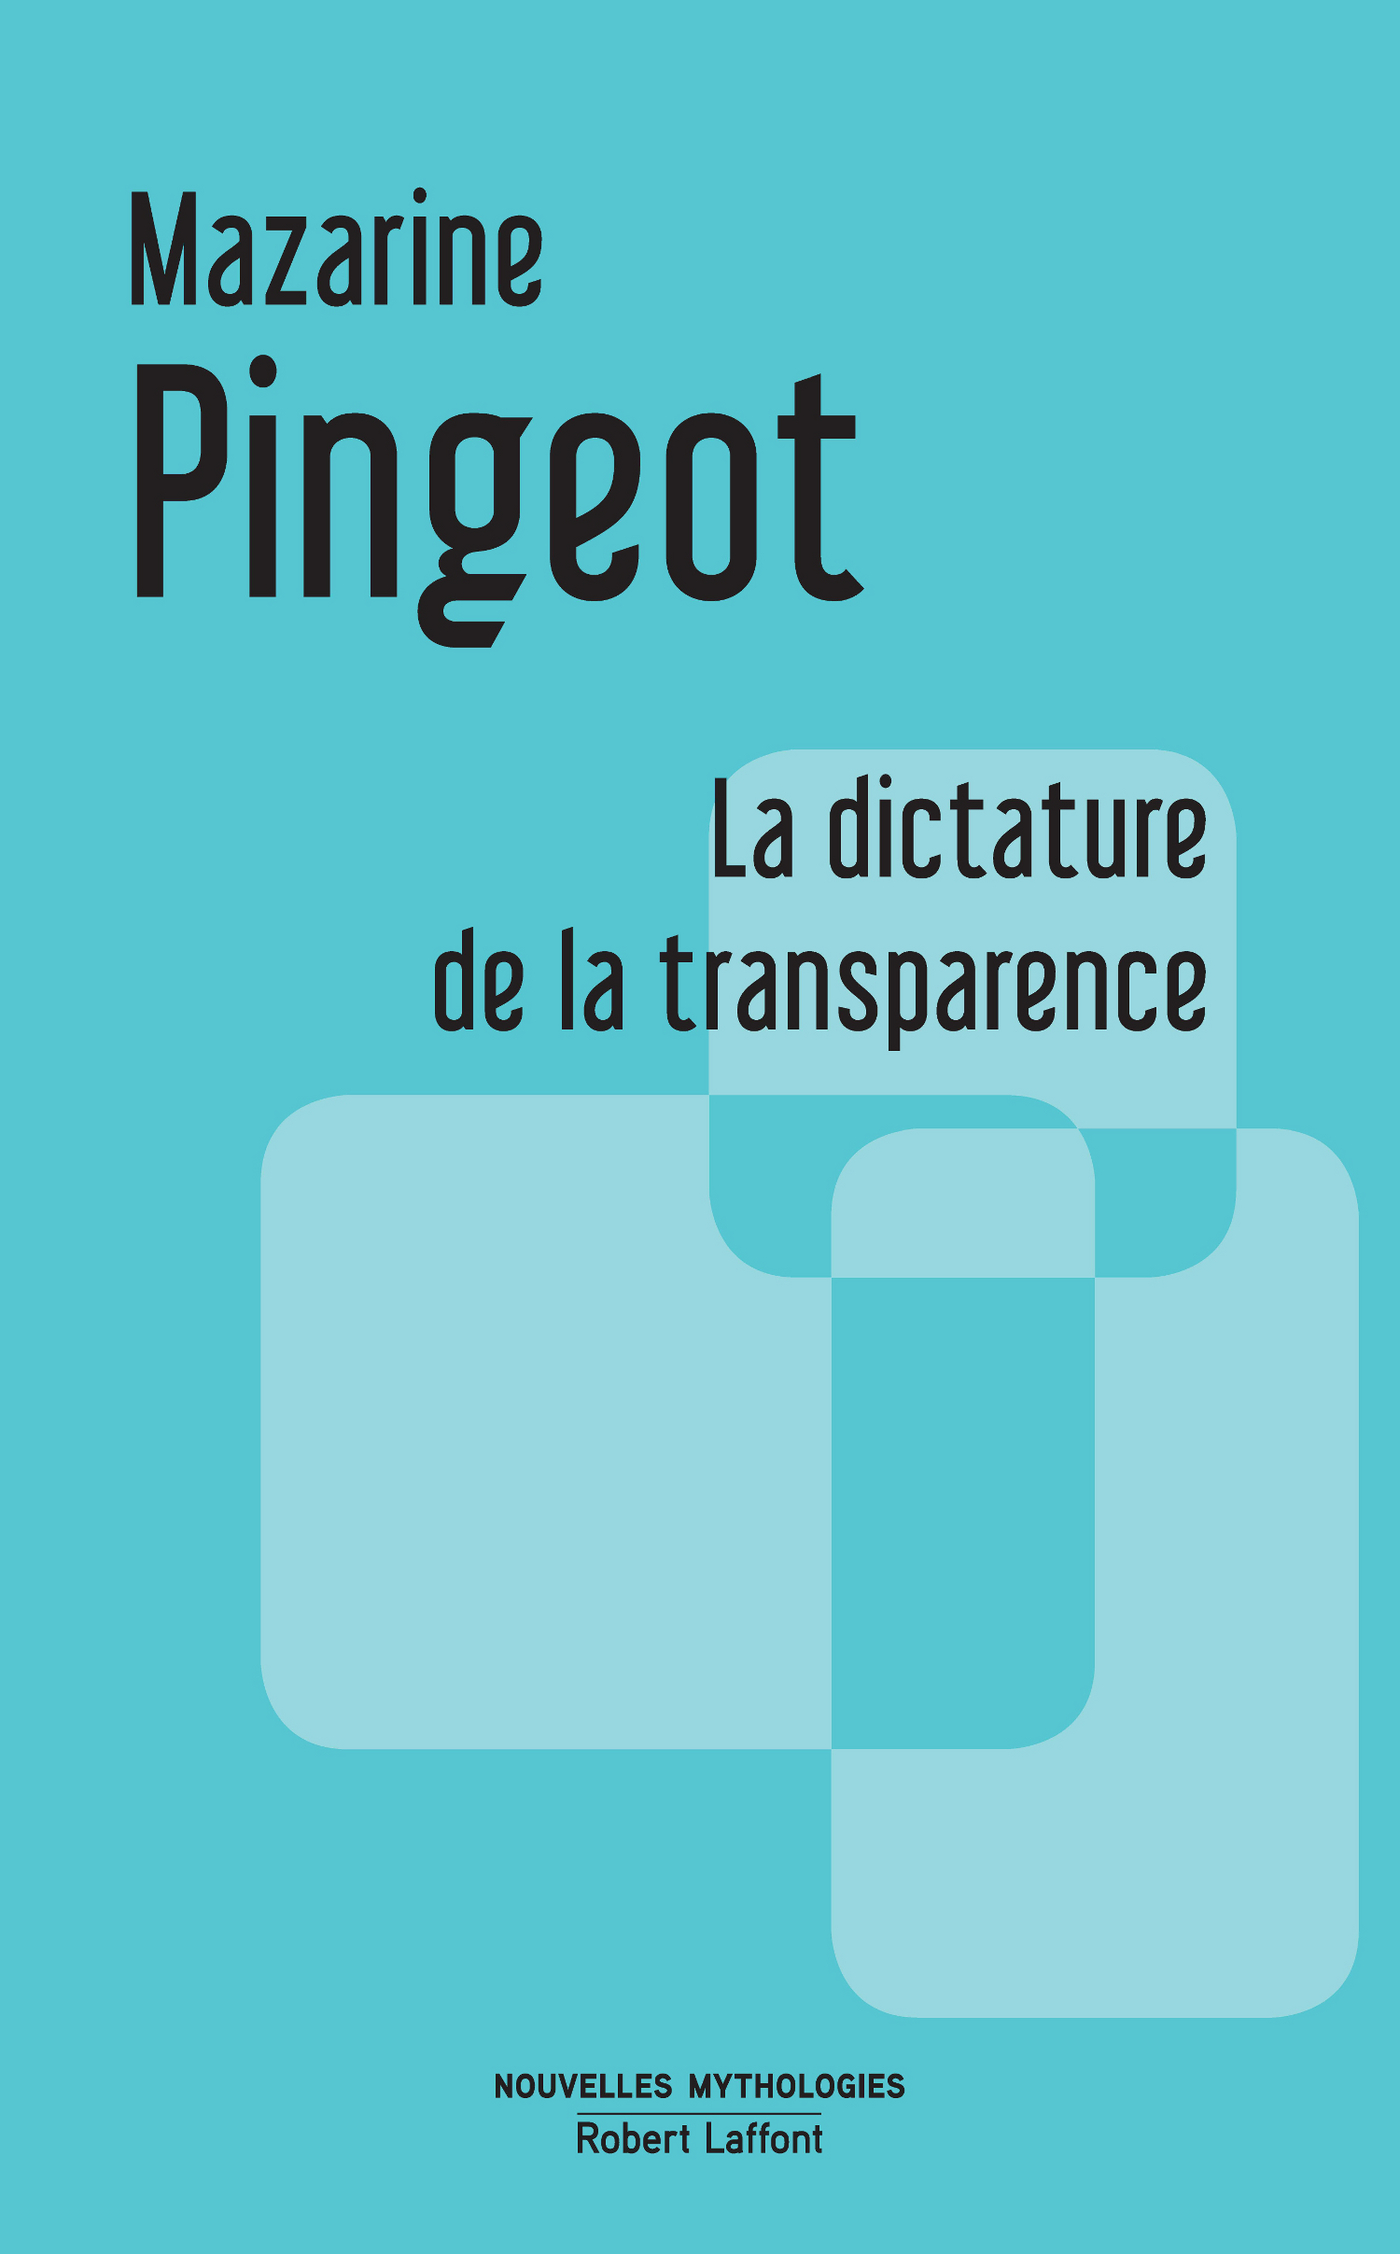 La Dictature de la transparence (ebook)